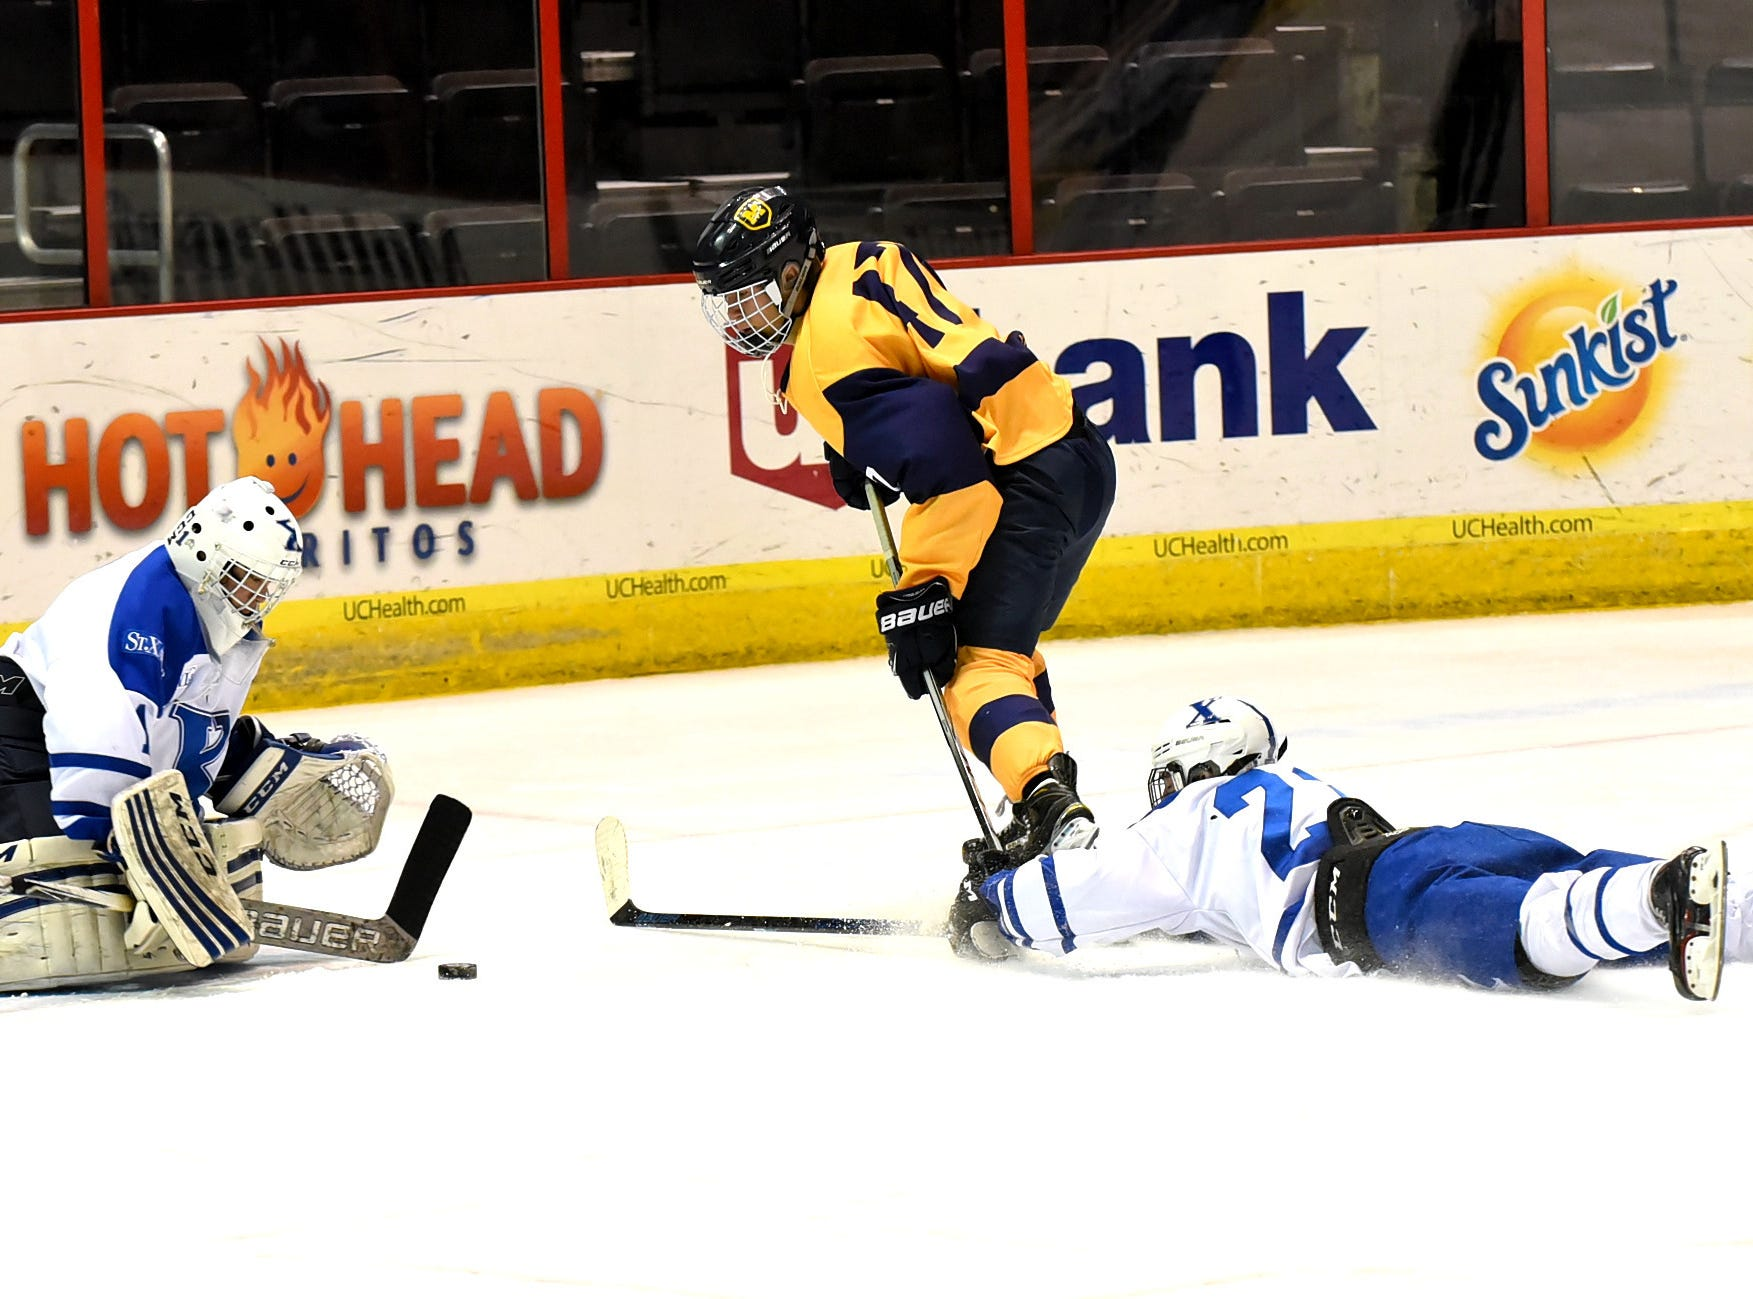 Jordy Walter (center) of Moeller tries to work in a shot on goal between St. Xavier Goalie Bailey Hammons and Tanner Morreale at US Bank Arena, December 7, 2018.